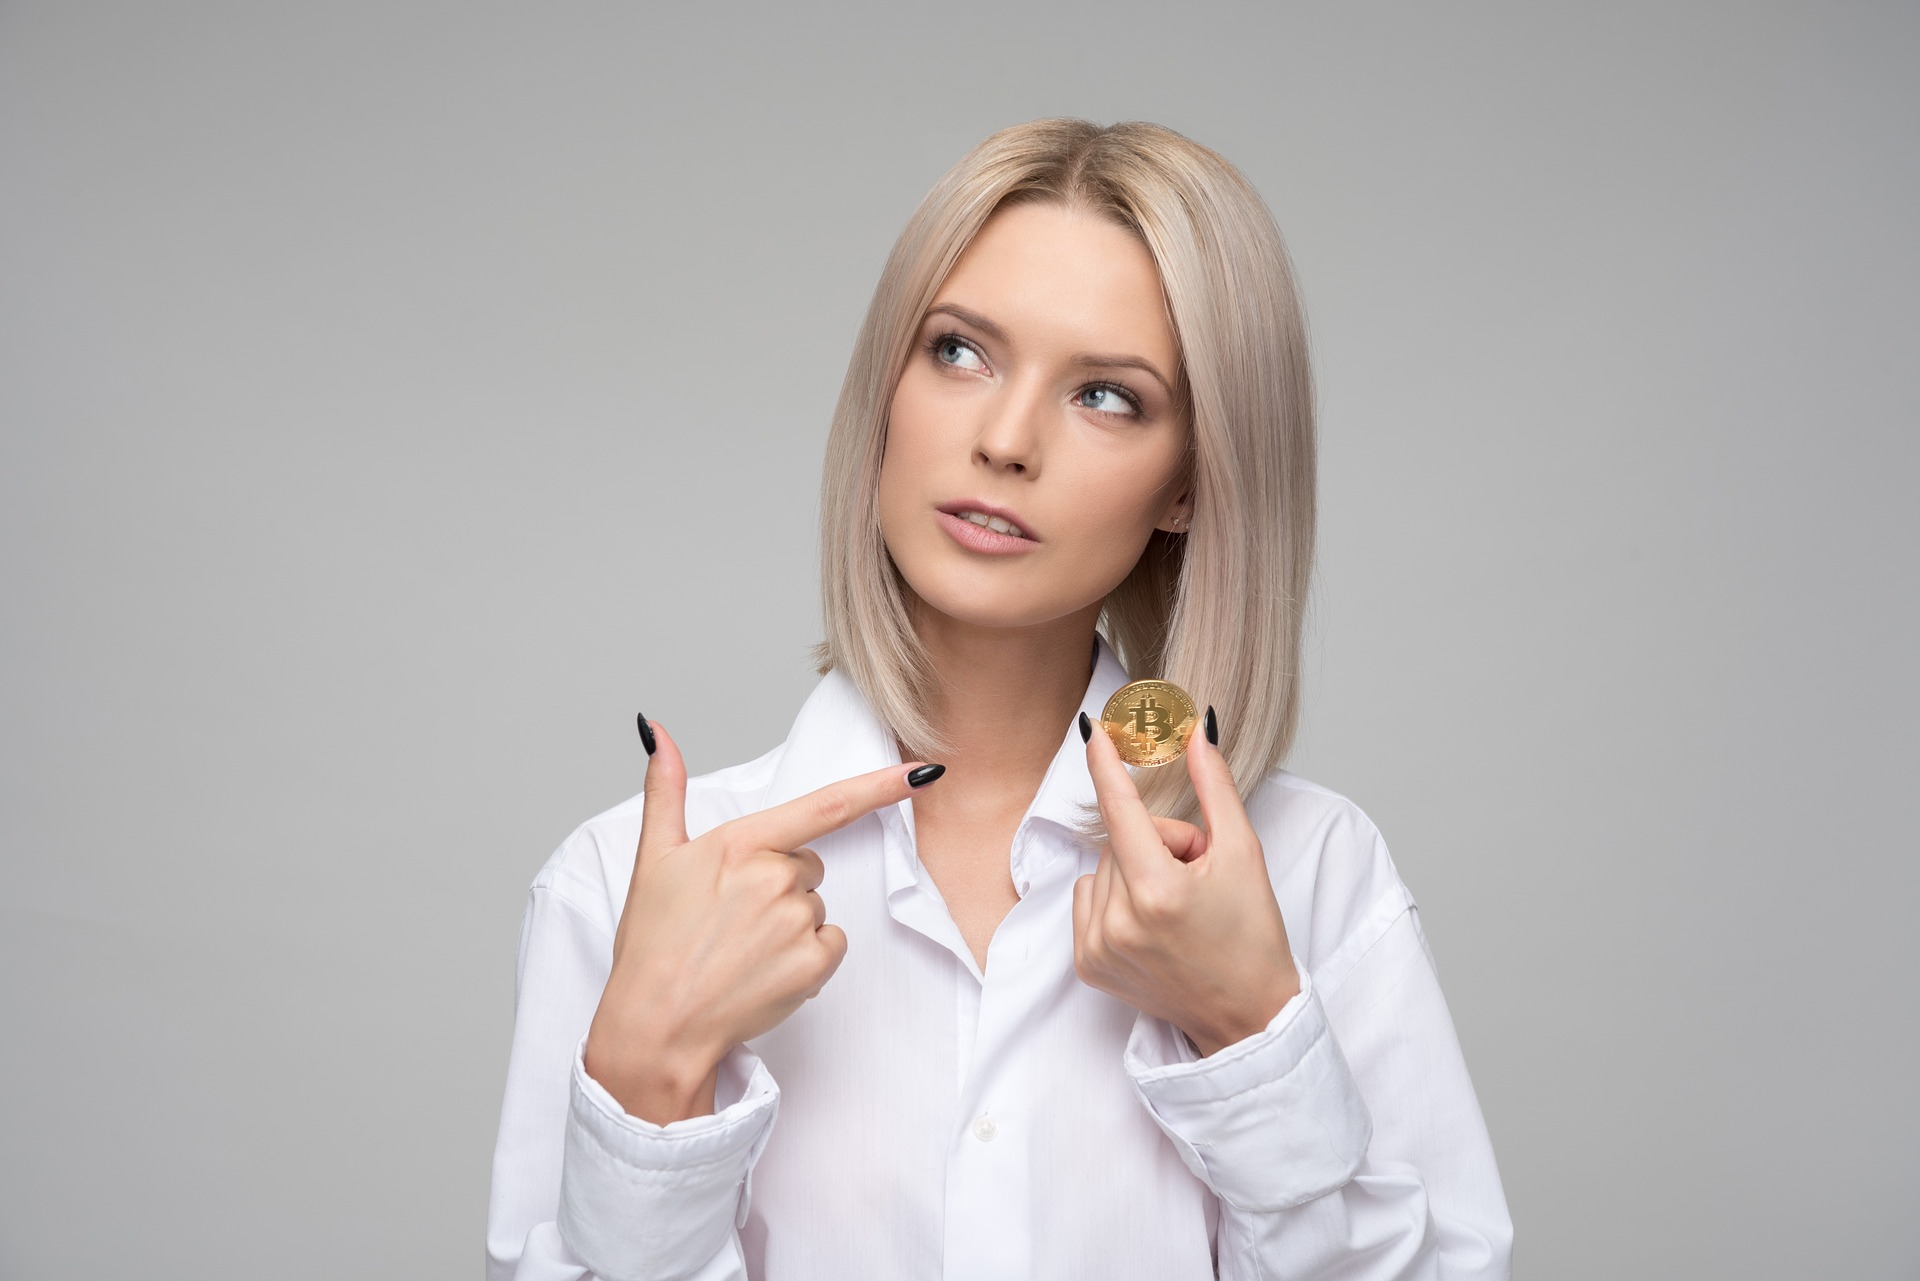 A lovely blond woman pointing to the Bitcoin coin that she holds.